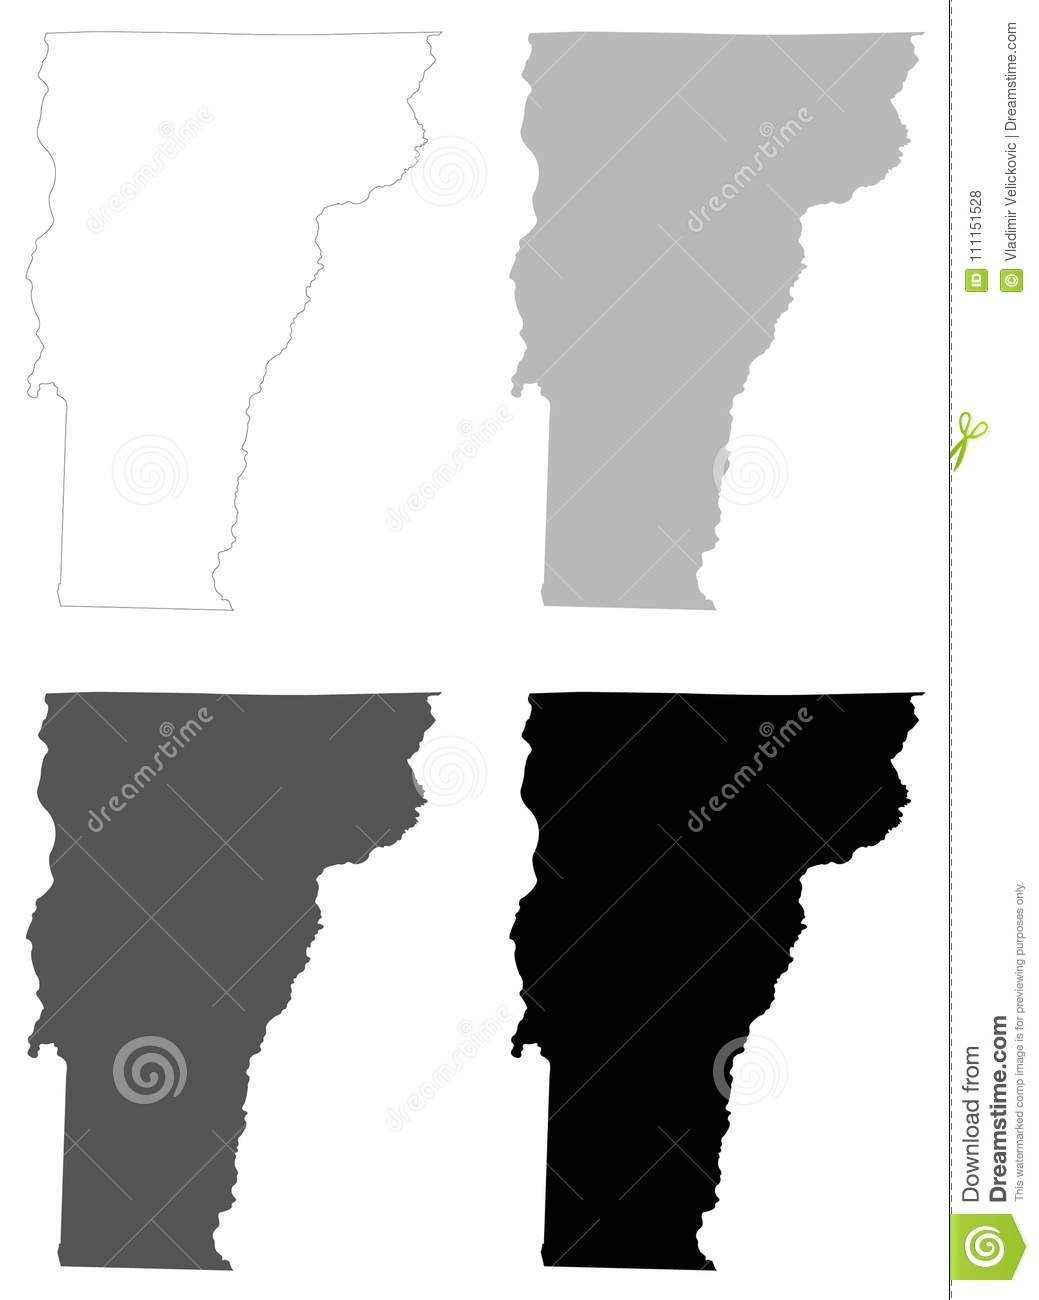 Vermont Map - State In The New England Region Of The Northeastern ...